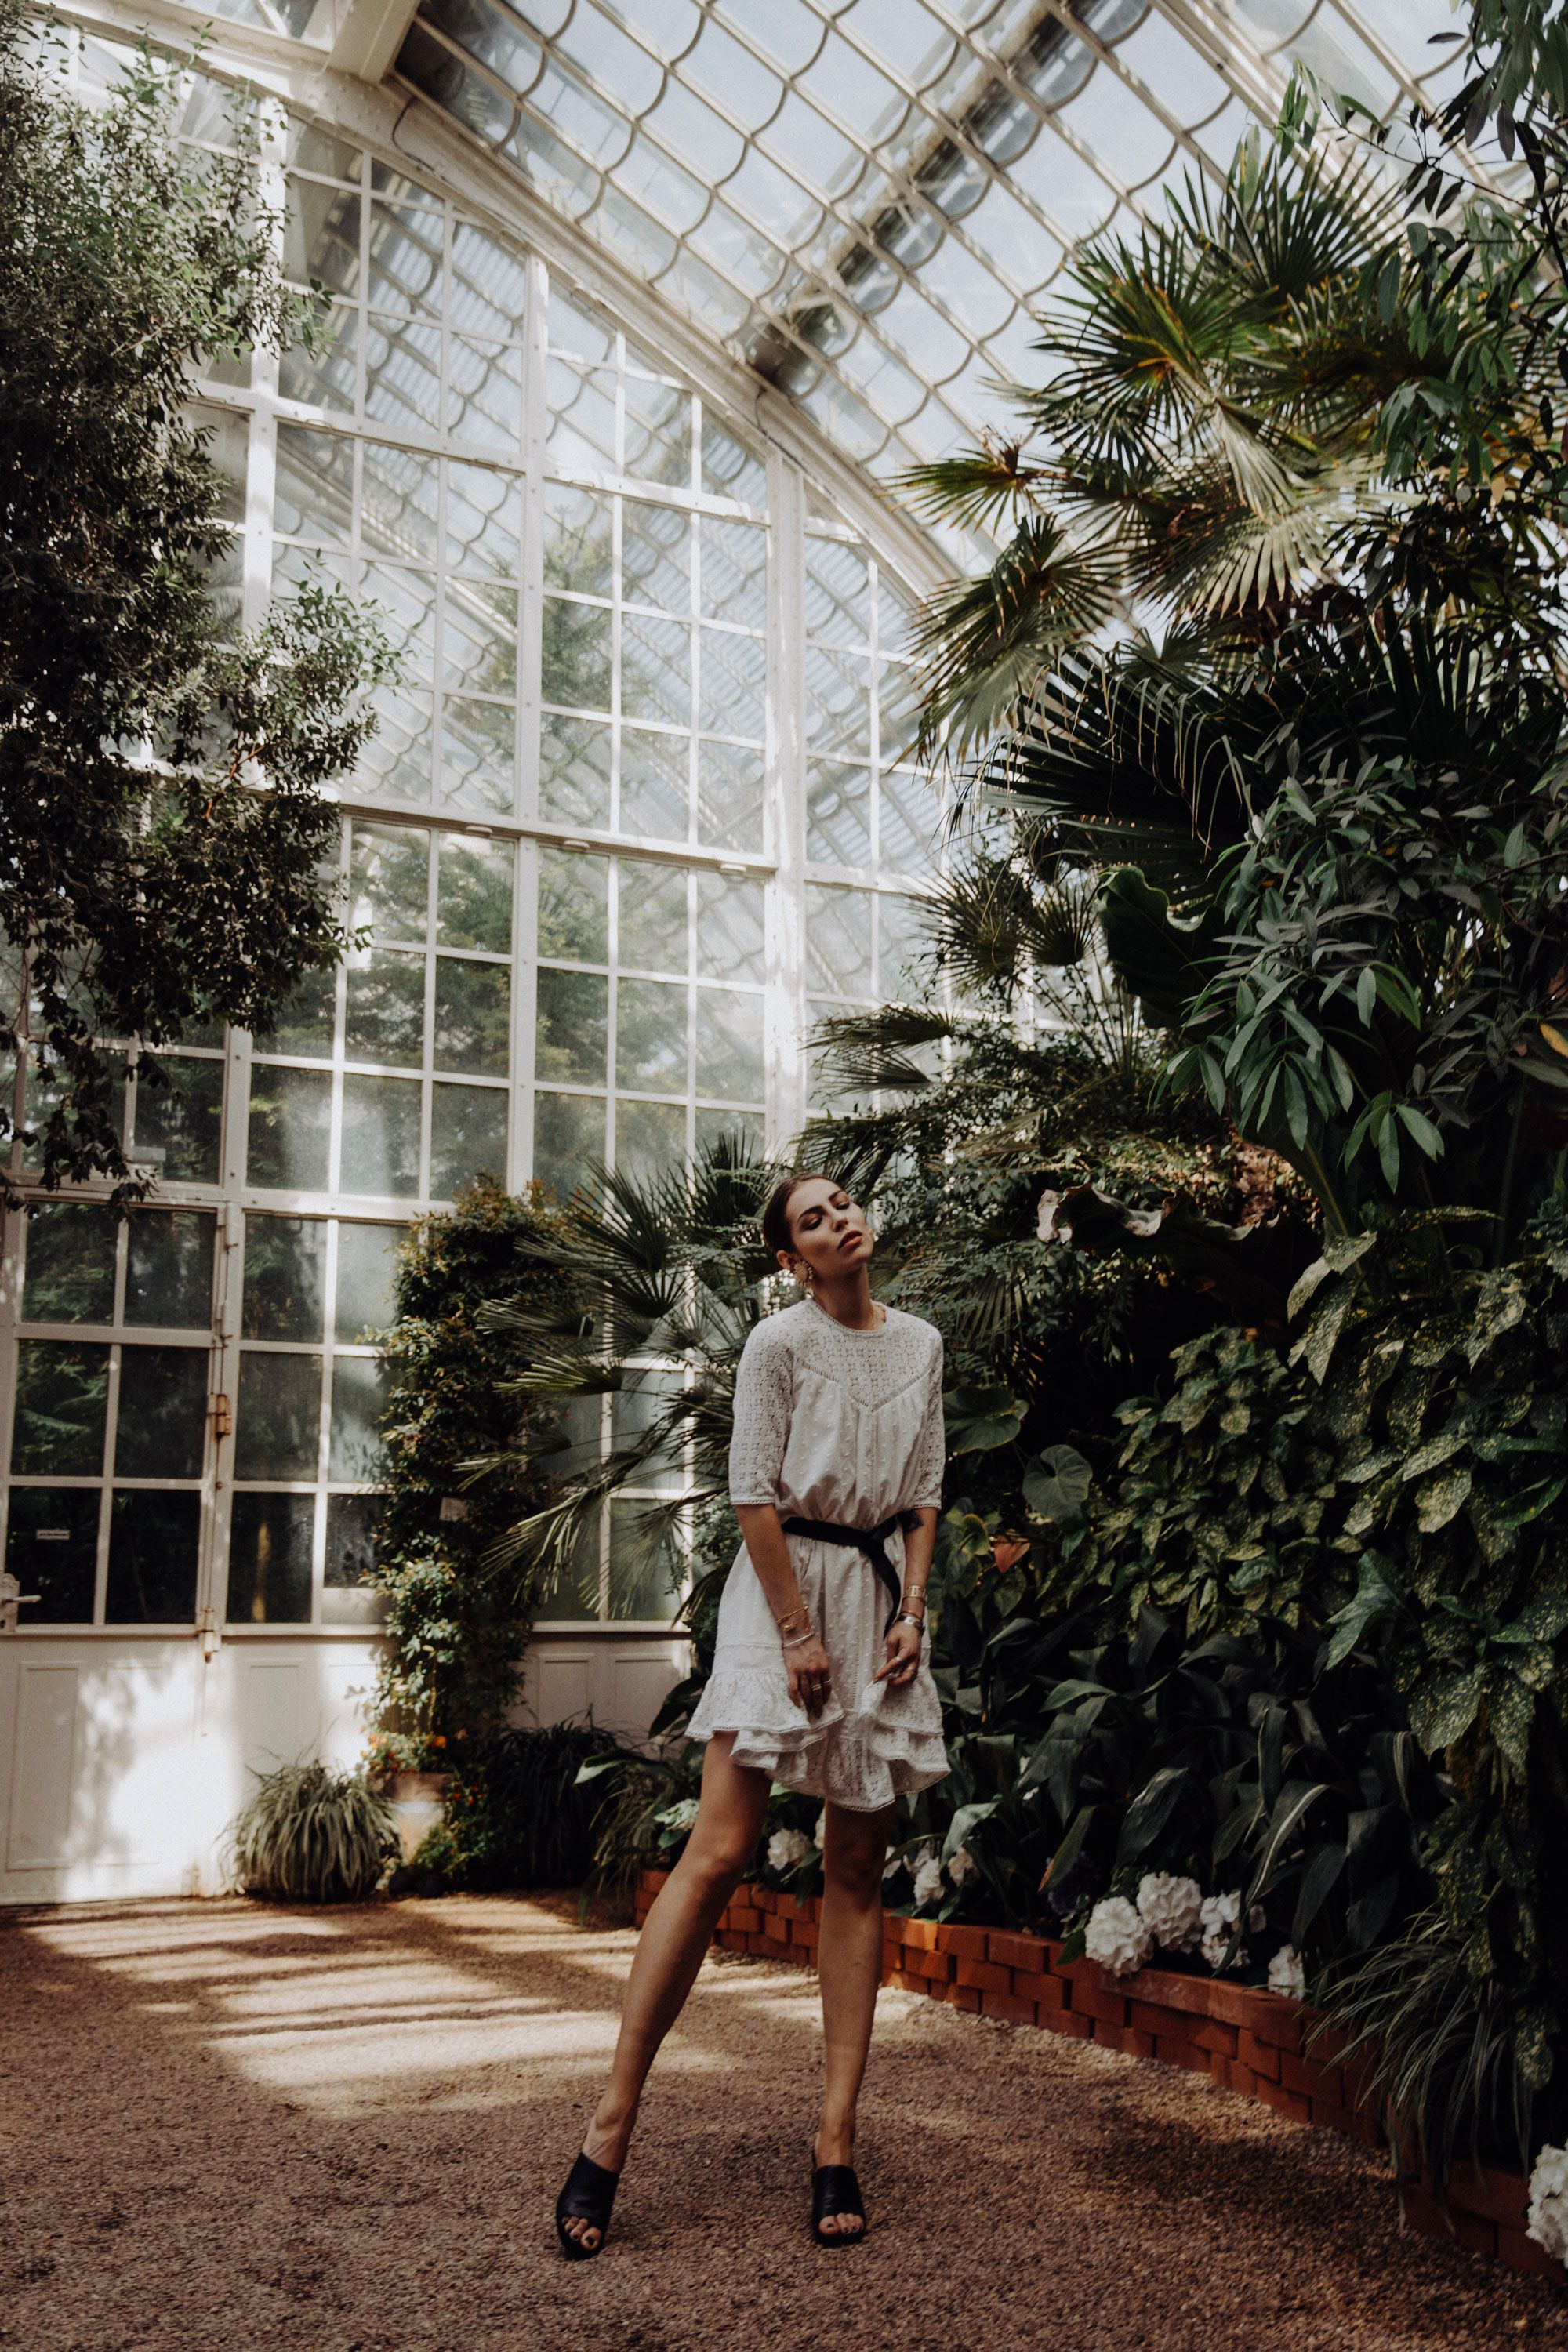 Why Nature Makes You Happy Fashion Blog From Germany Fashion Blog From Germany Berlin White Plumetti In 2020 Dressy Casual Germany Fashion Dressy Casual Outfits